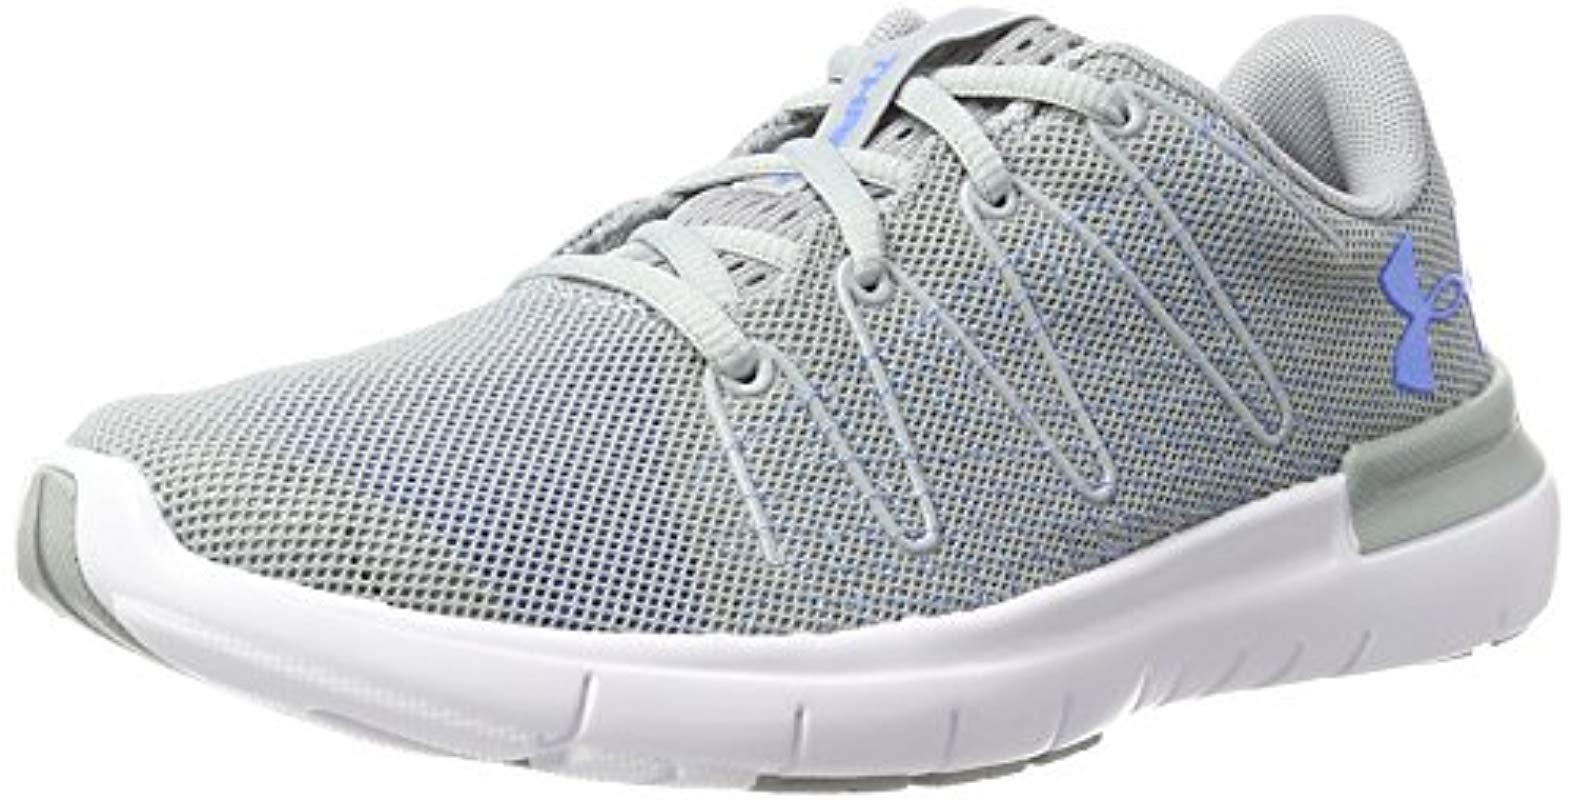 big sale a52a8 64db3 Under Armour 's Ua W Thrill 3 Training Shoes in Gray - Lyst